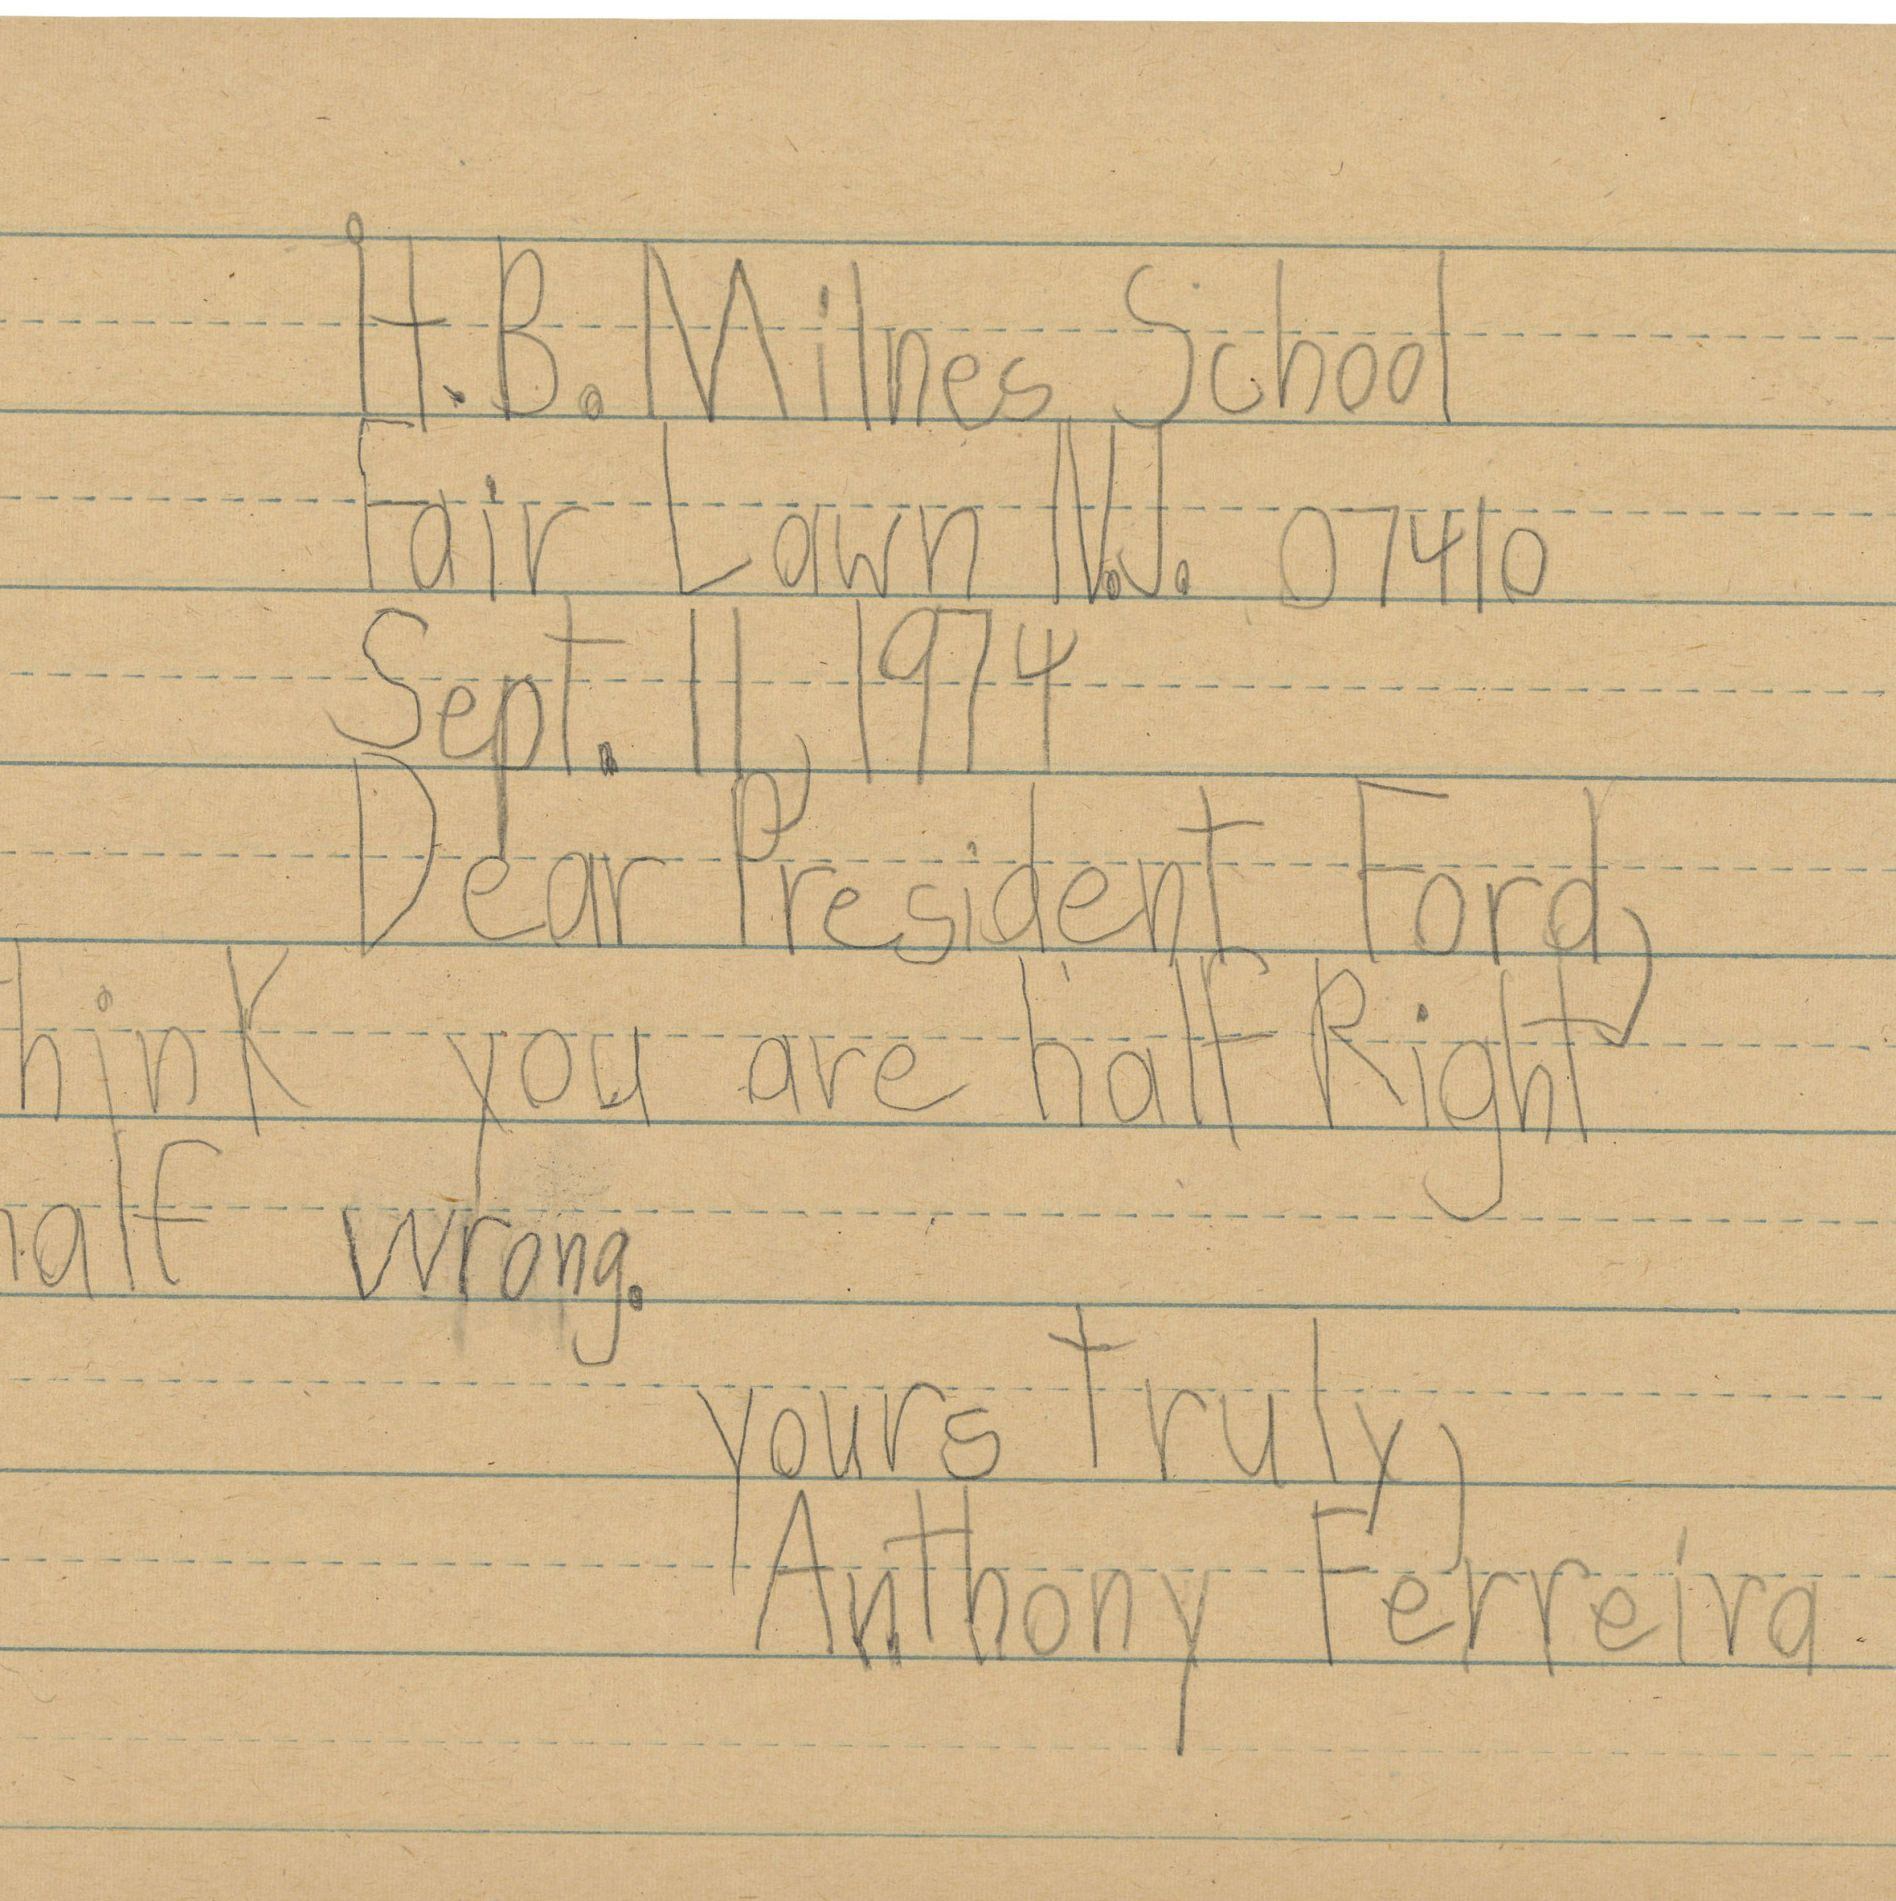 Letter to President Gerald Ford from Anthony Ferreira